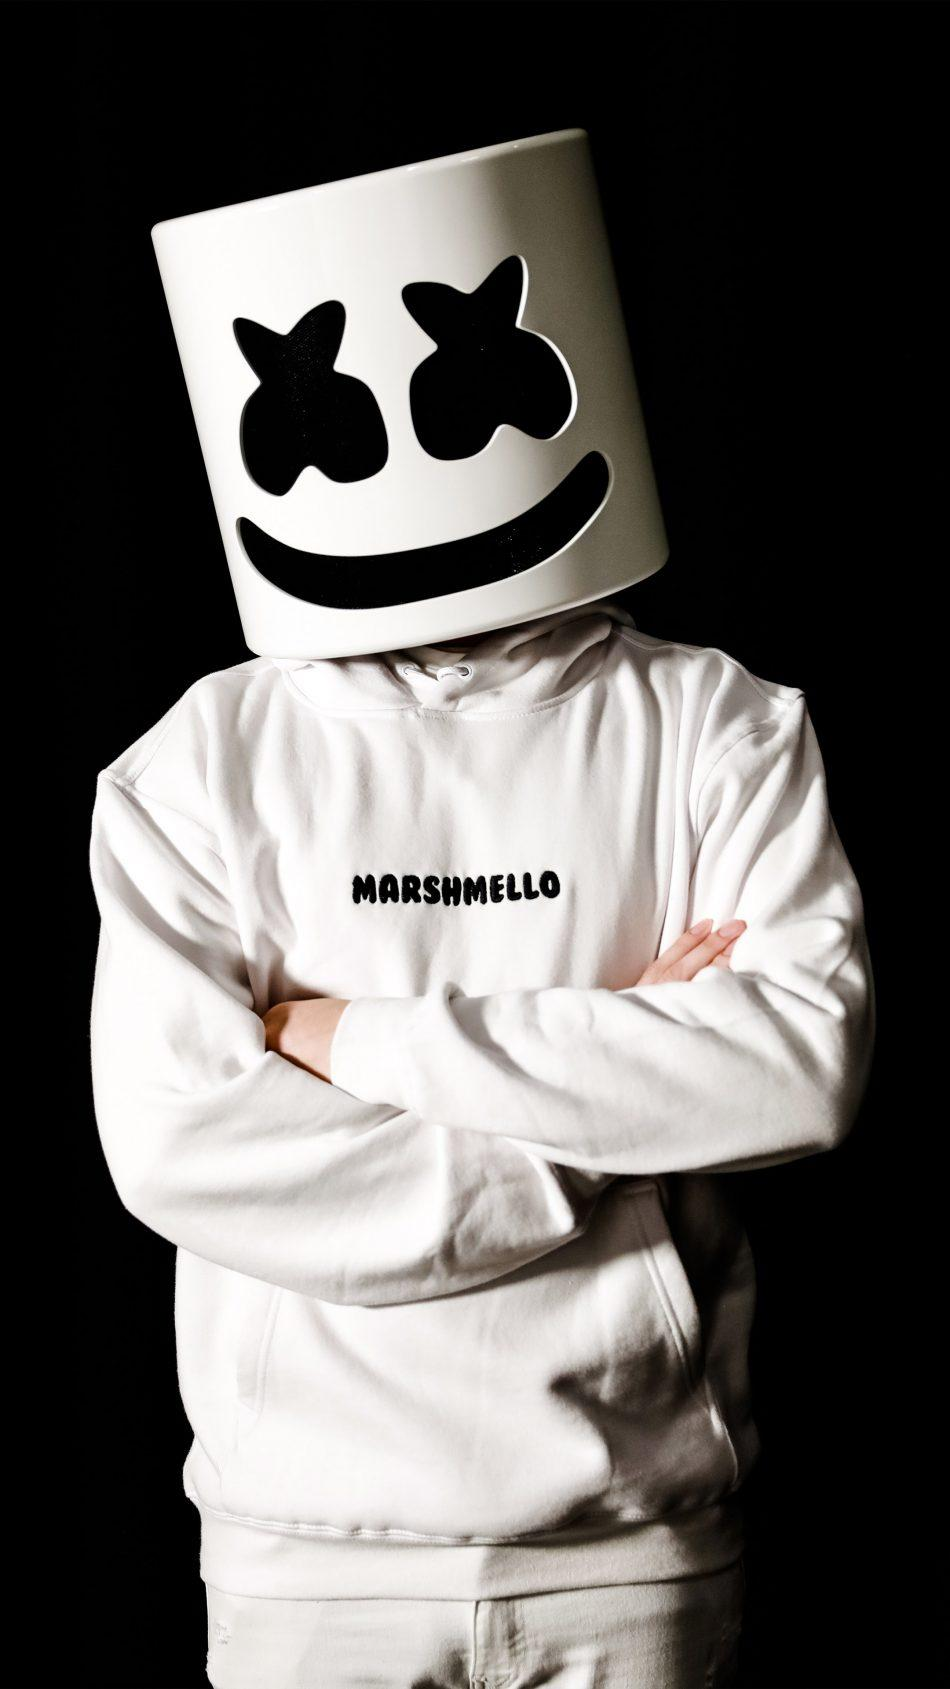 Marshmello Black And White Wallpapers Wallpaper Cave